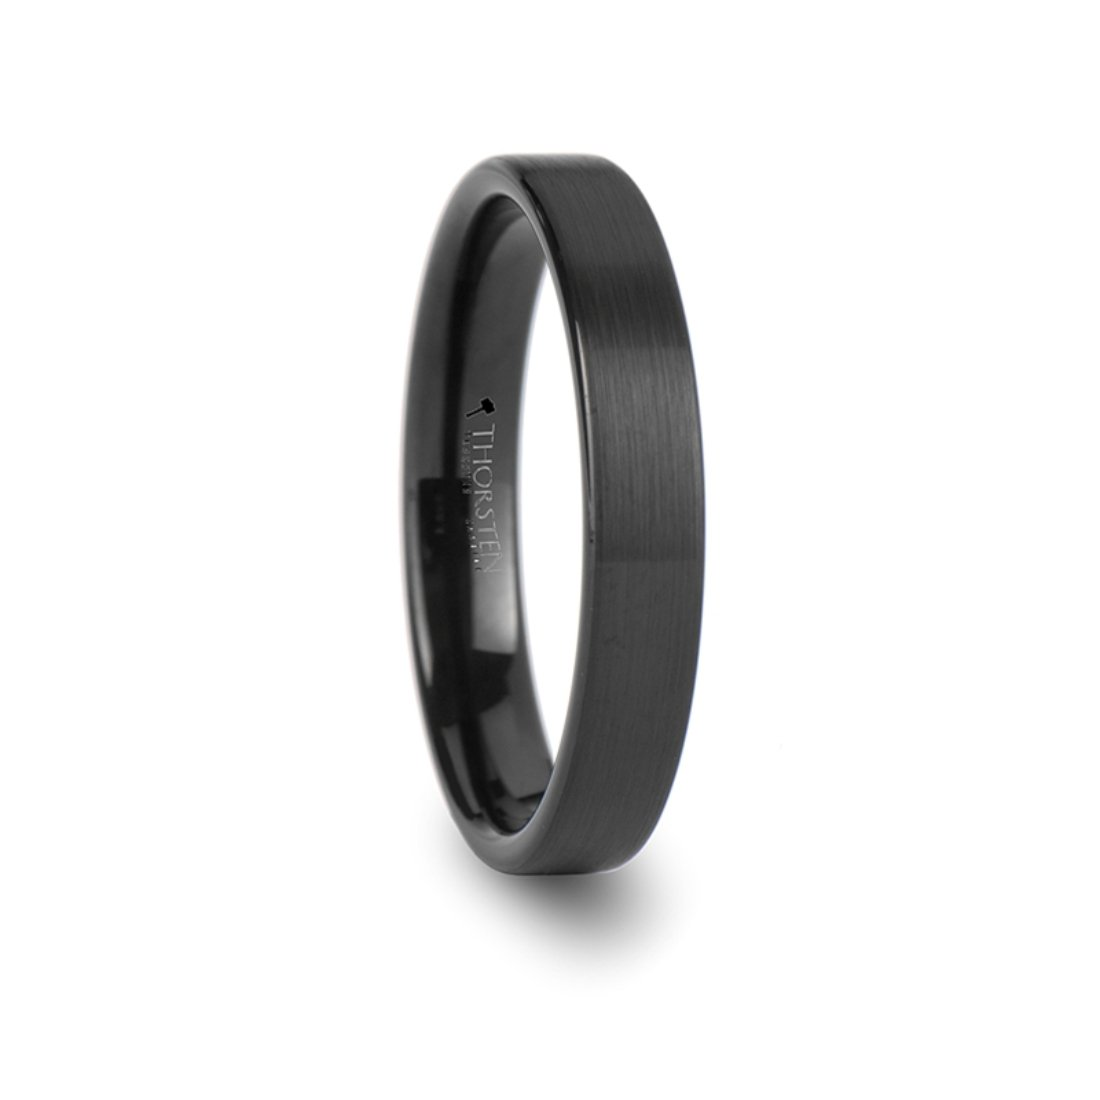 Thorsten SAN Antonio Flat Black Brushed Finish Tungsten Ring 4mm Wide Wedding Band from Roy Rose Jewelry